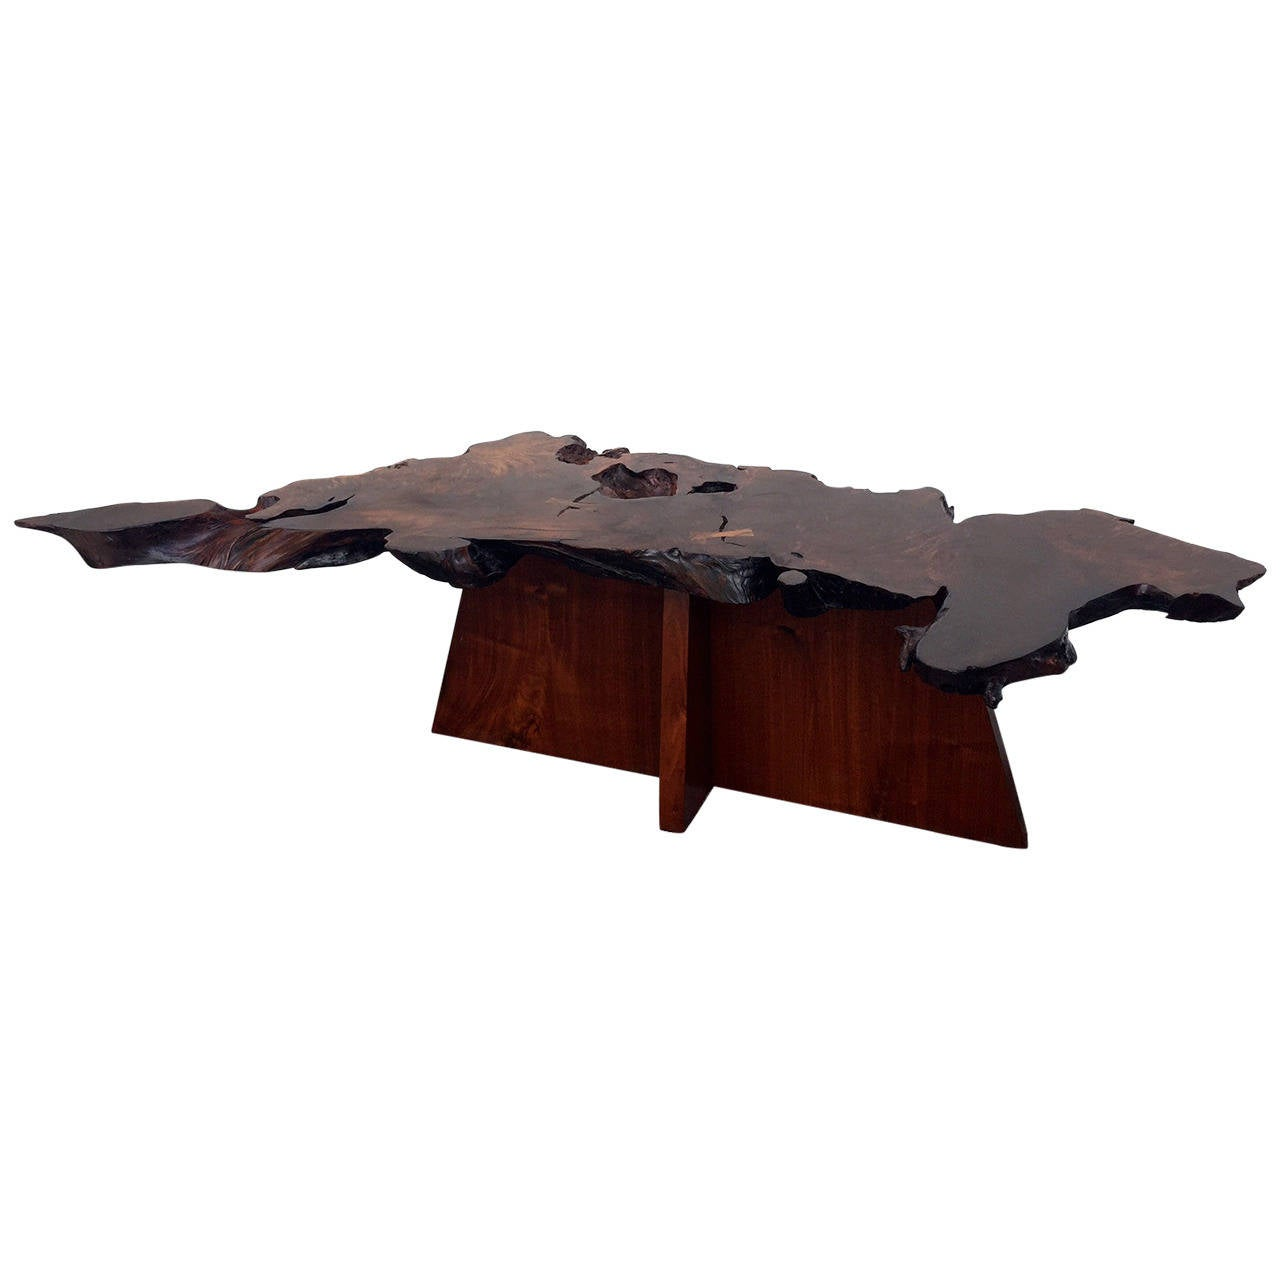 Rare and exceptional walnut and redwood root coffee table by mira rare and exceptional walnut and redwood root coffee table by mira nakashima 1 geotapseo Image collections